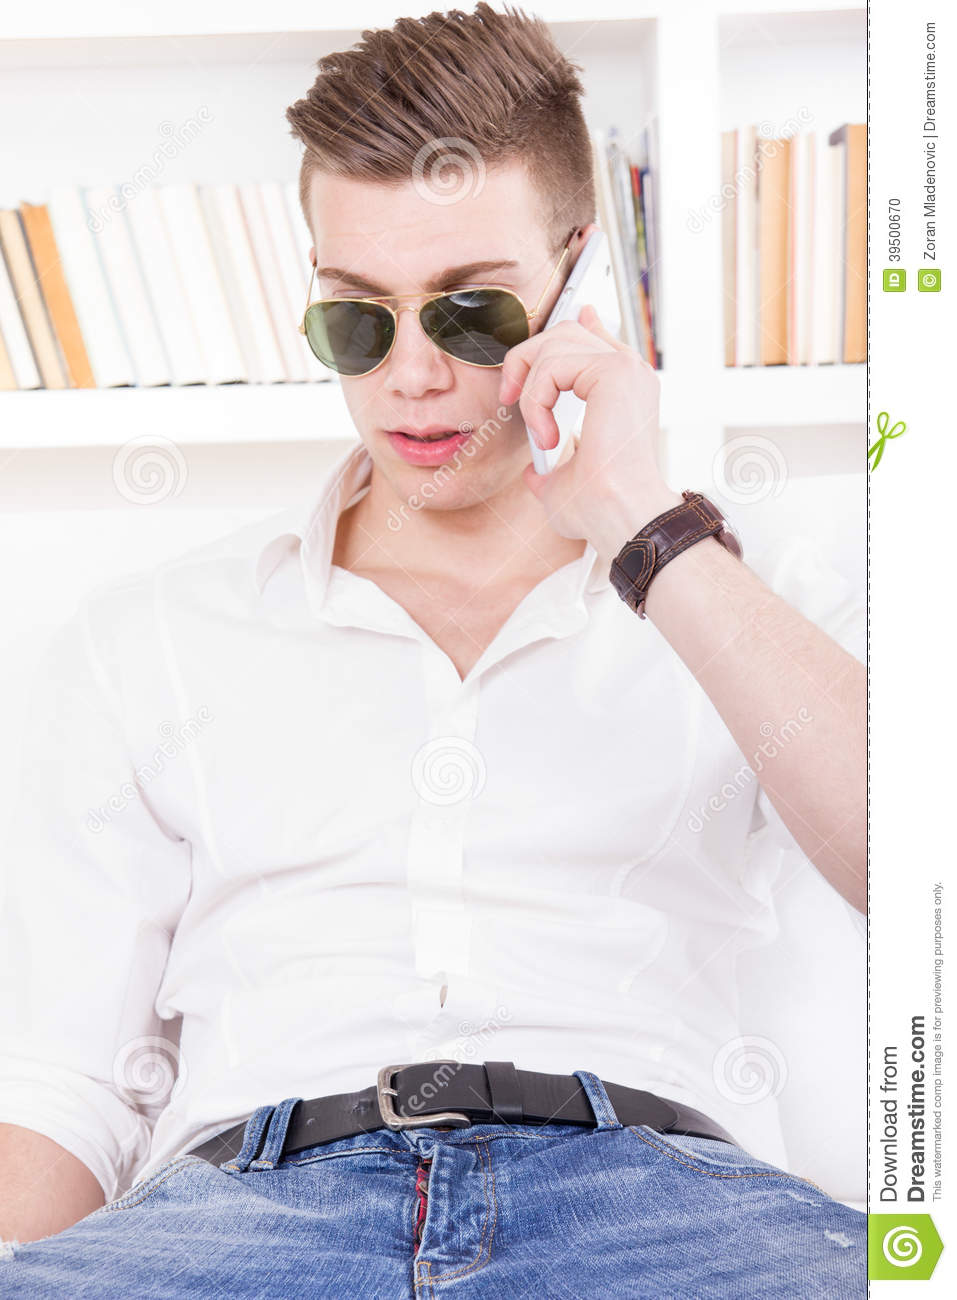 Modern guy with sunglasses talking on the phone